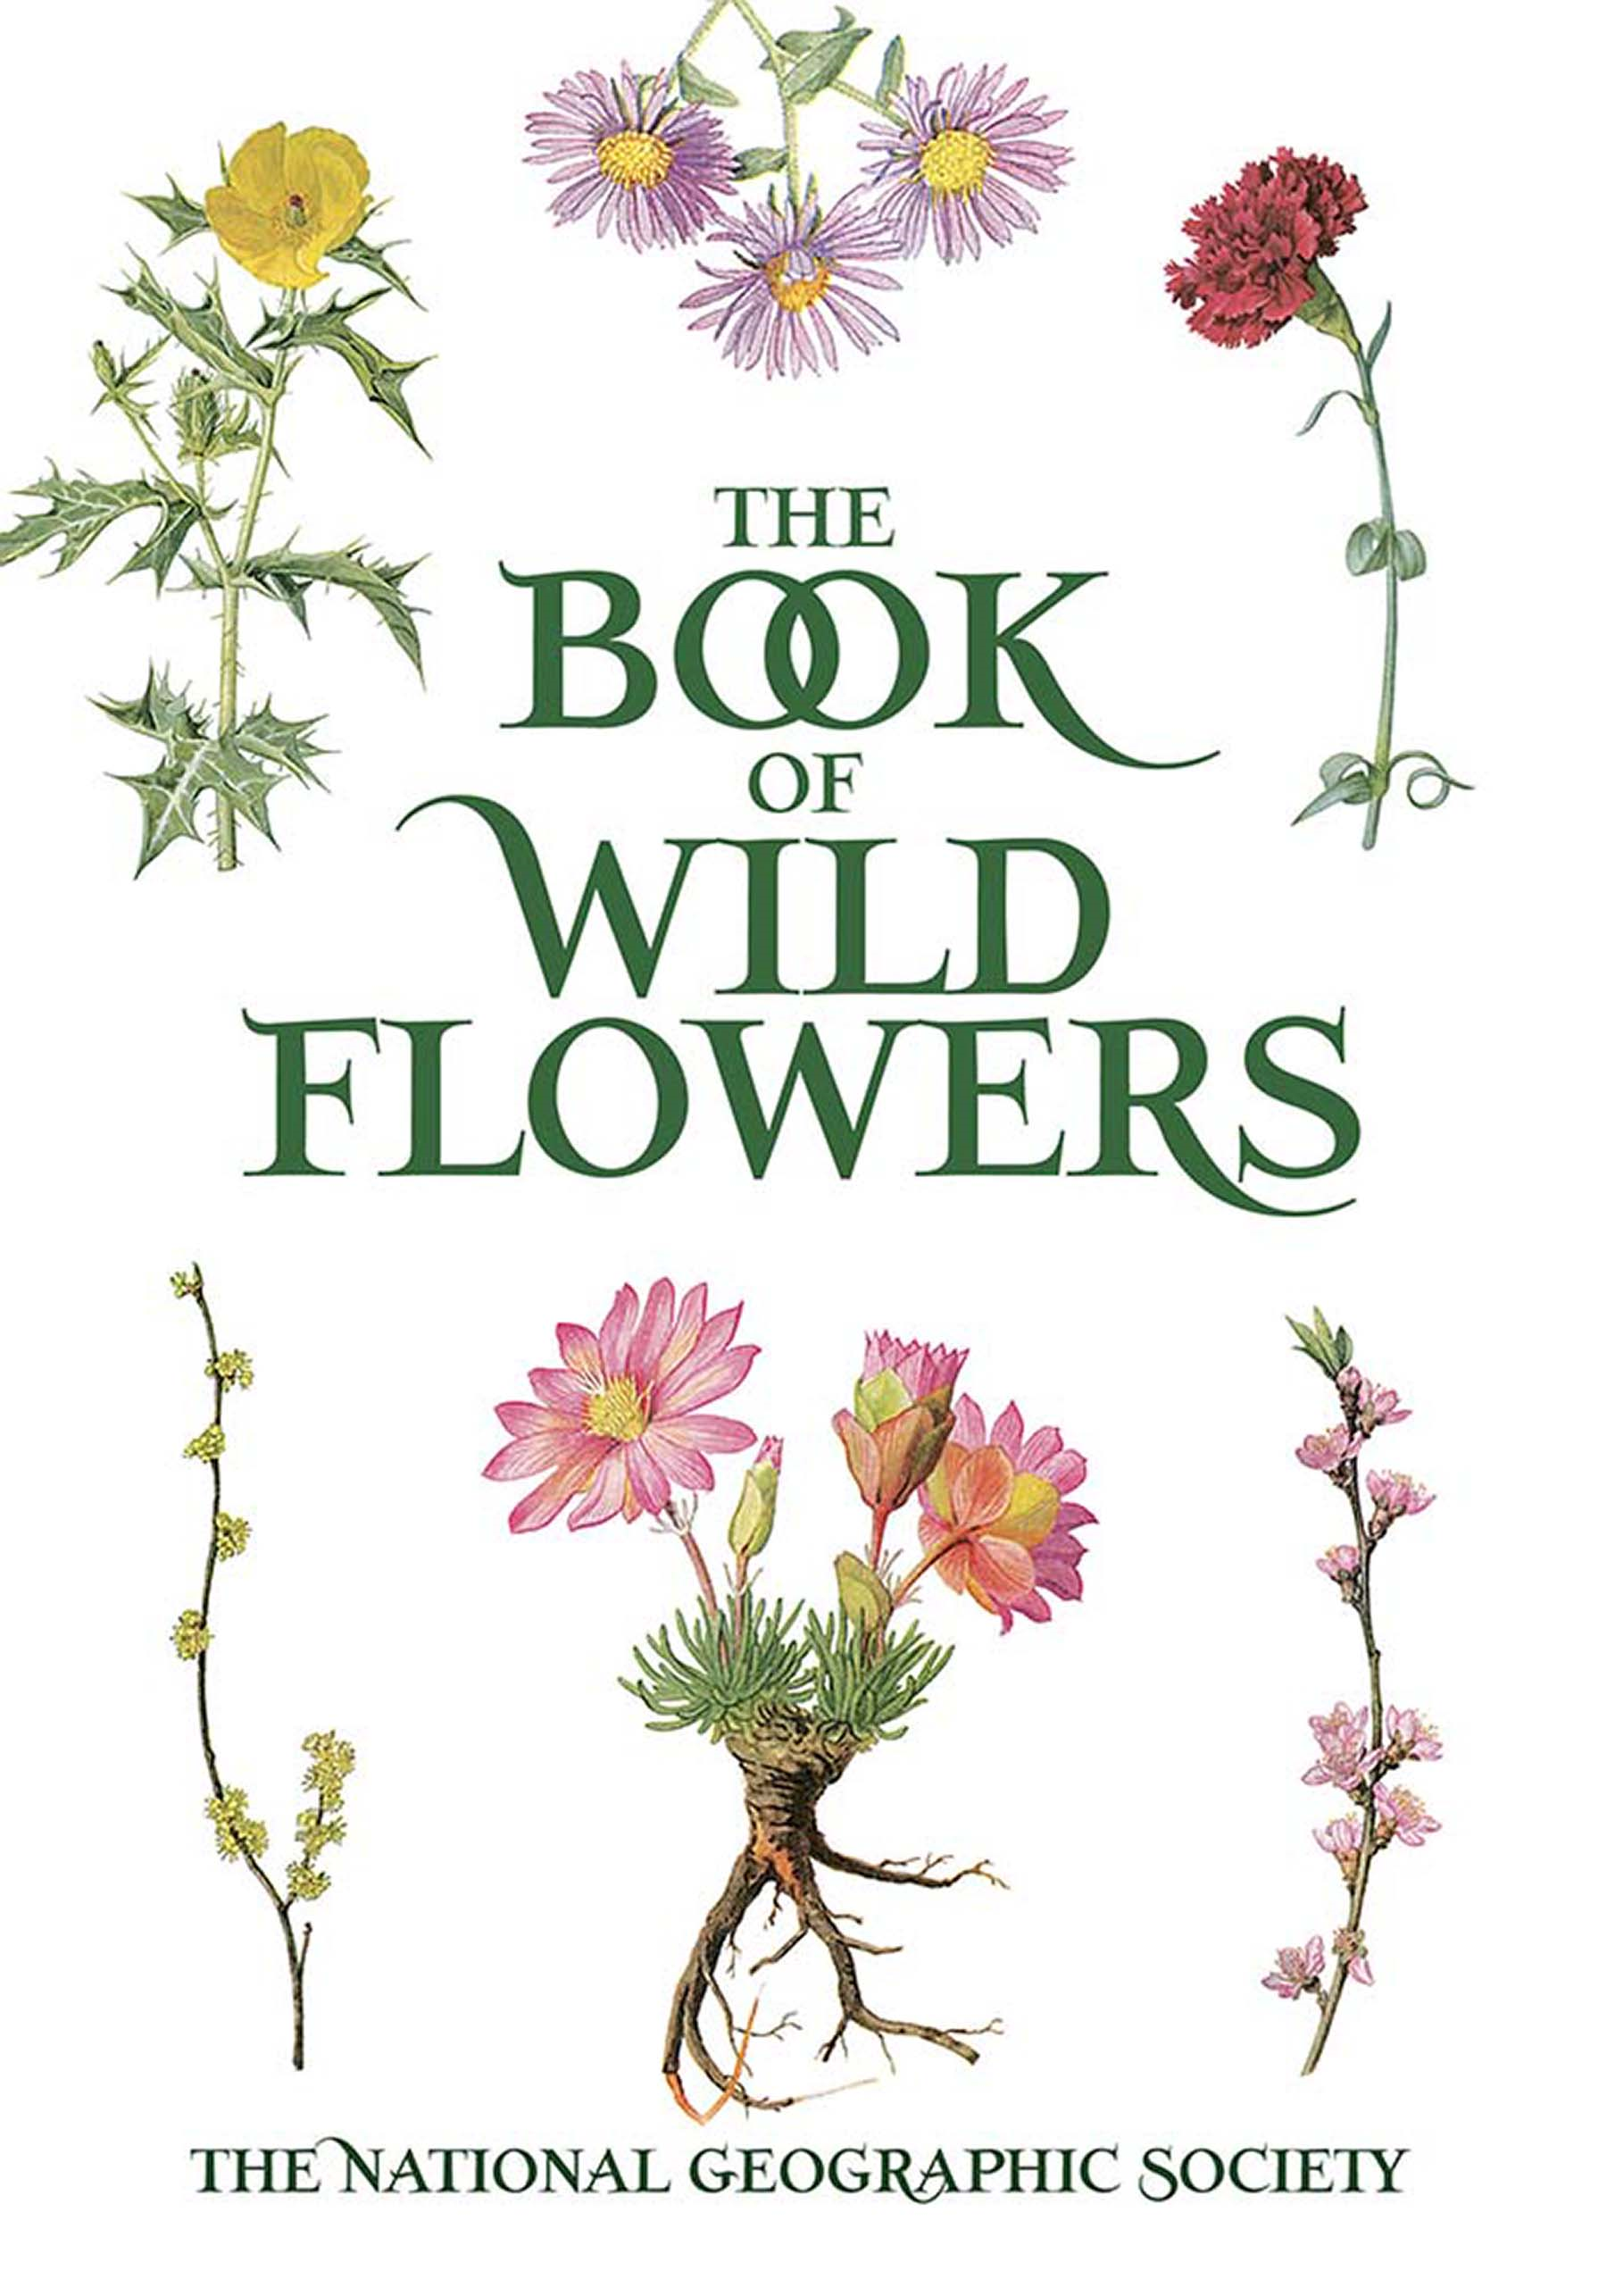 The Book of Wild Flowers